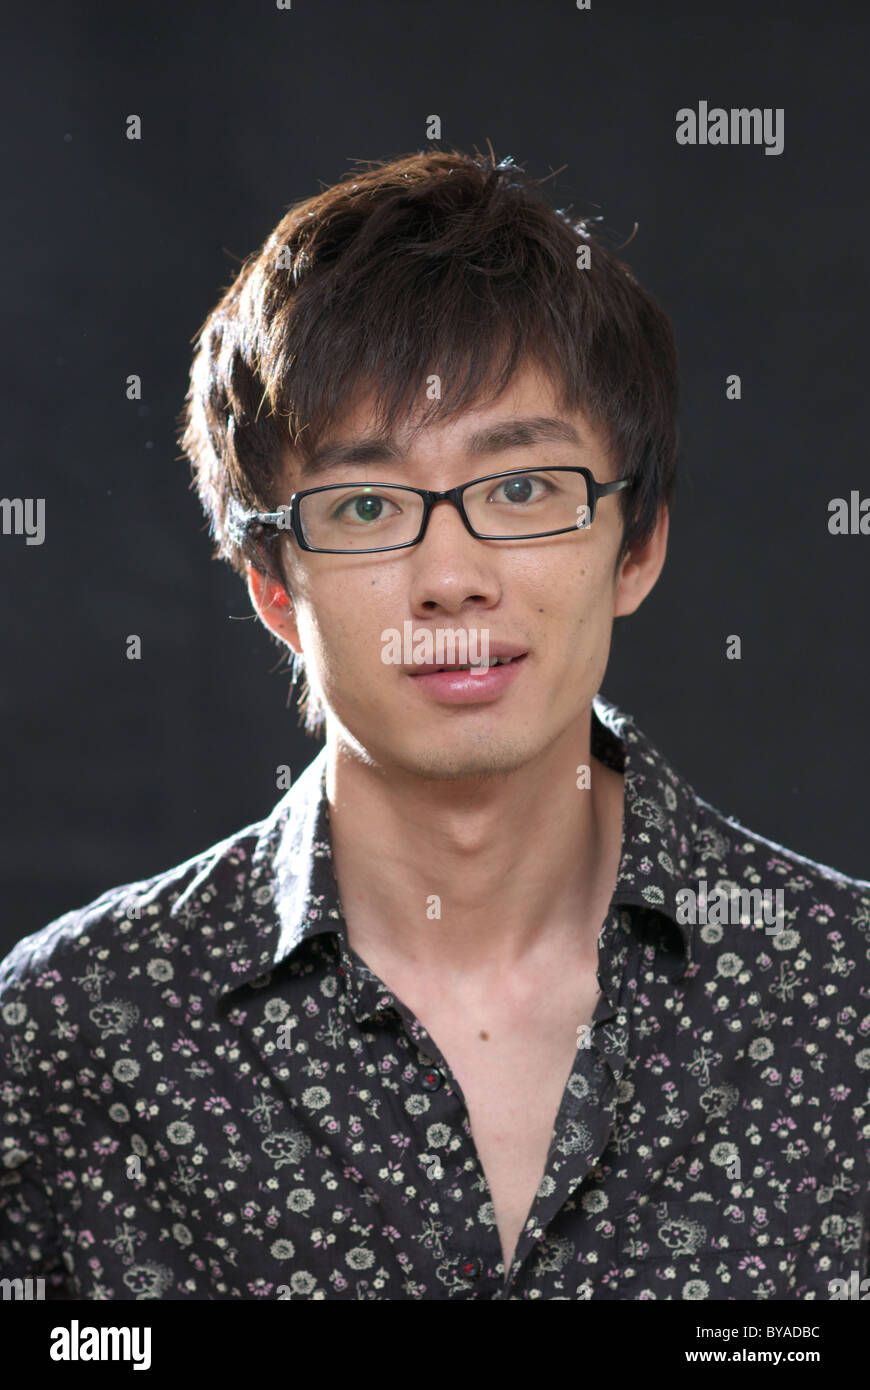 Asian young man portrait - Stock Image